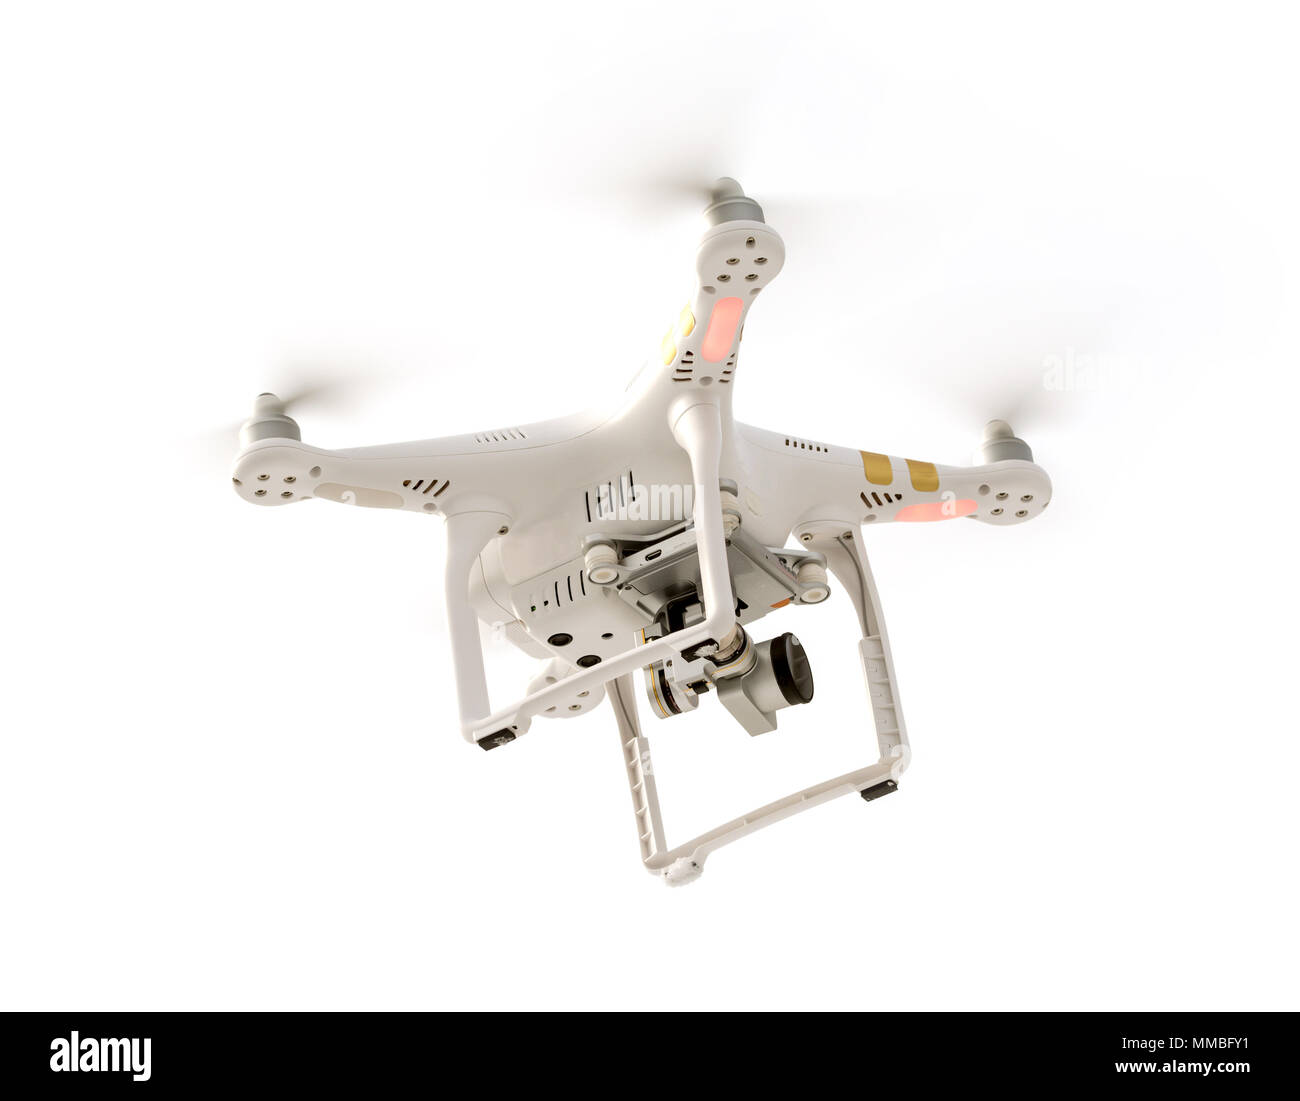 Photo of a flying camera drone isolated against a white background. Stock Photo